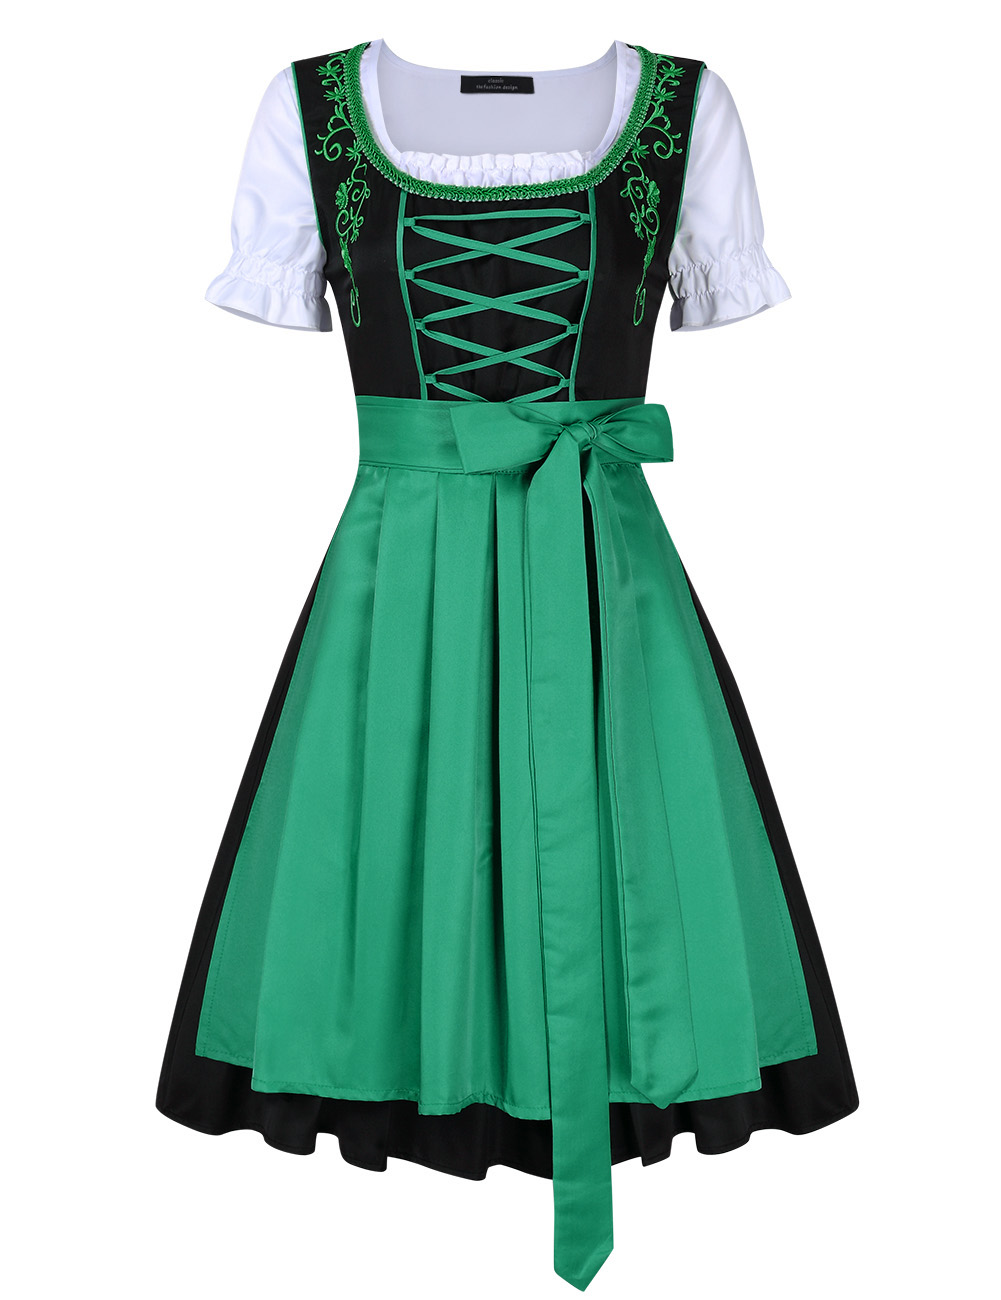 [EU Direct] Women's Classic Dress Three Pieces Suit for German Traditional Oktoberfest Costumes